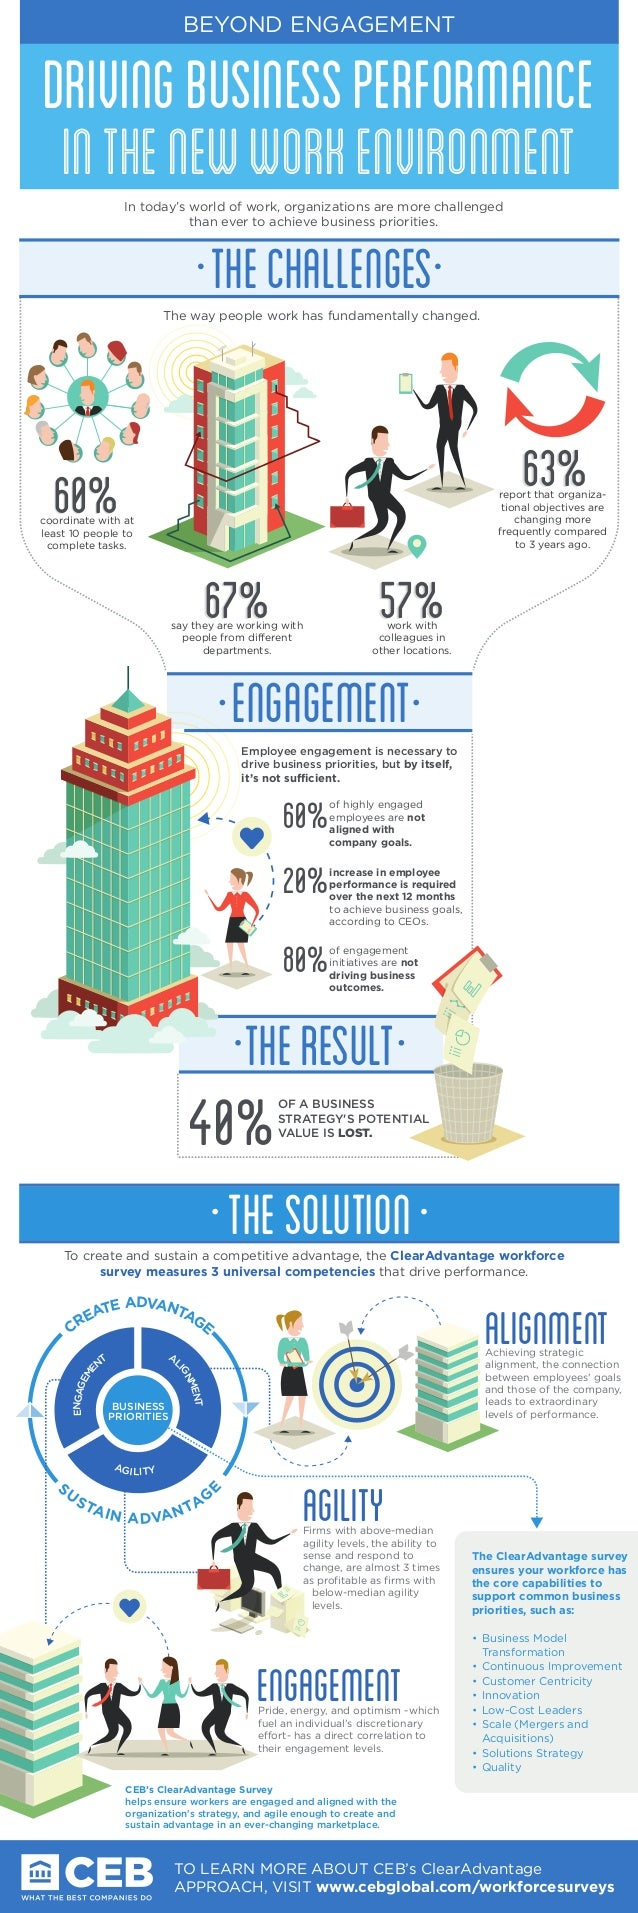 Driving Business Performance in the New Work Environment